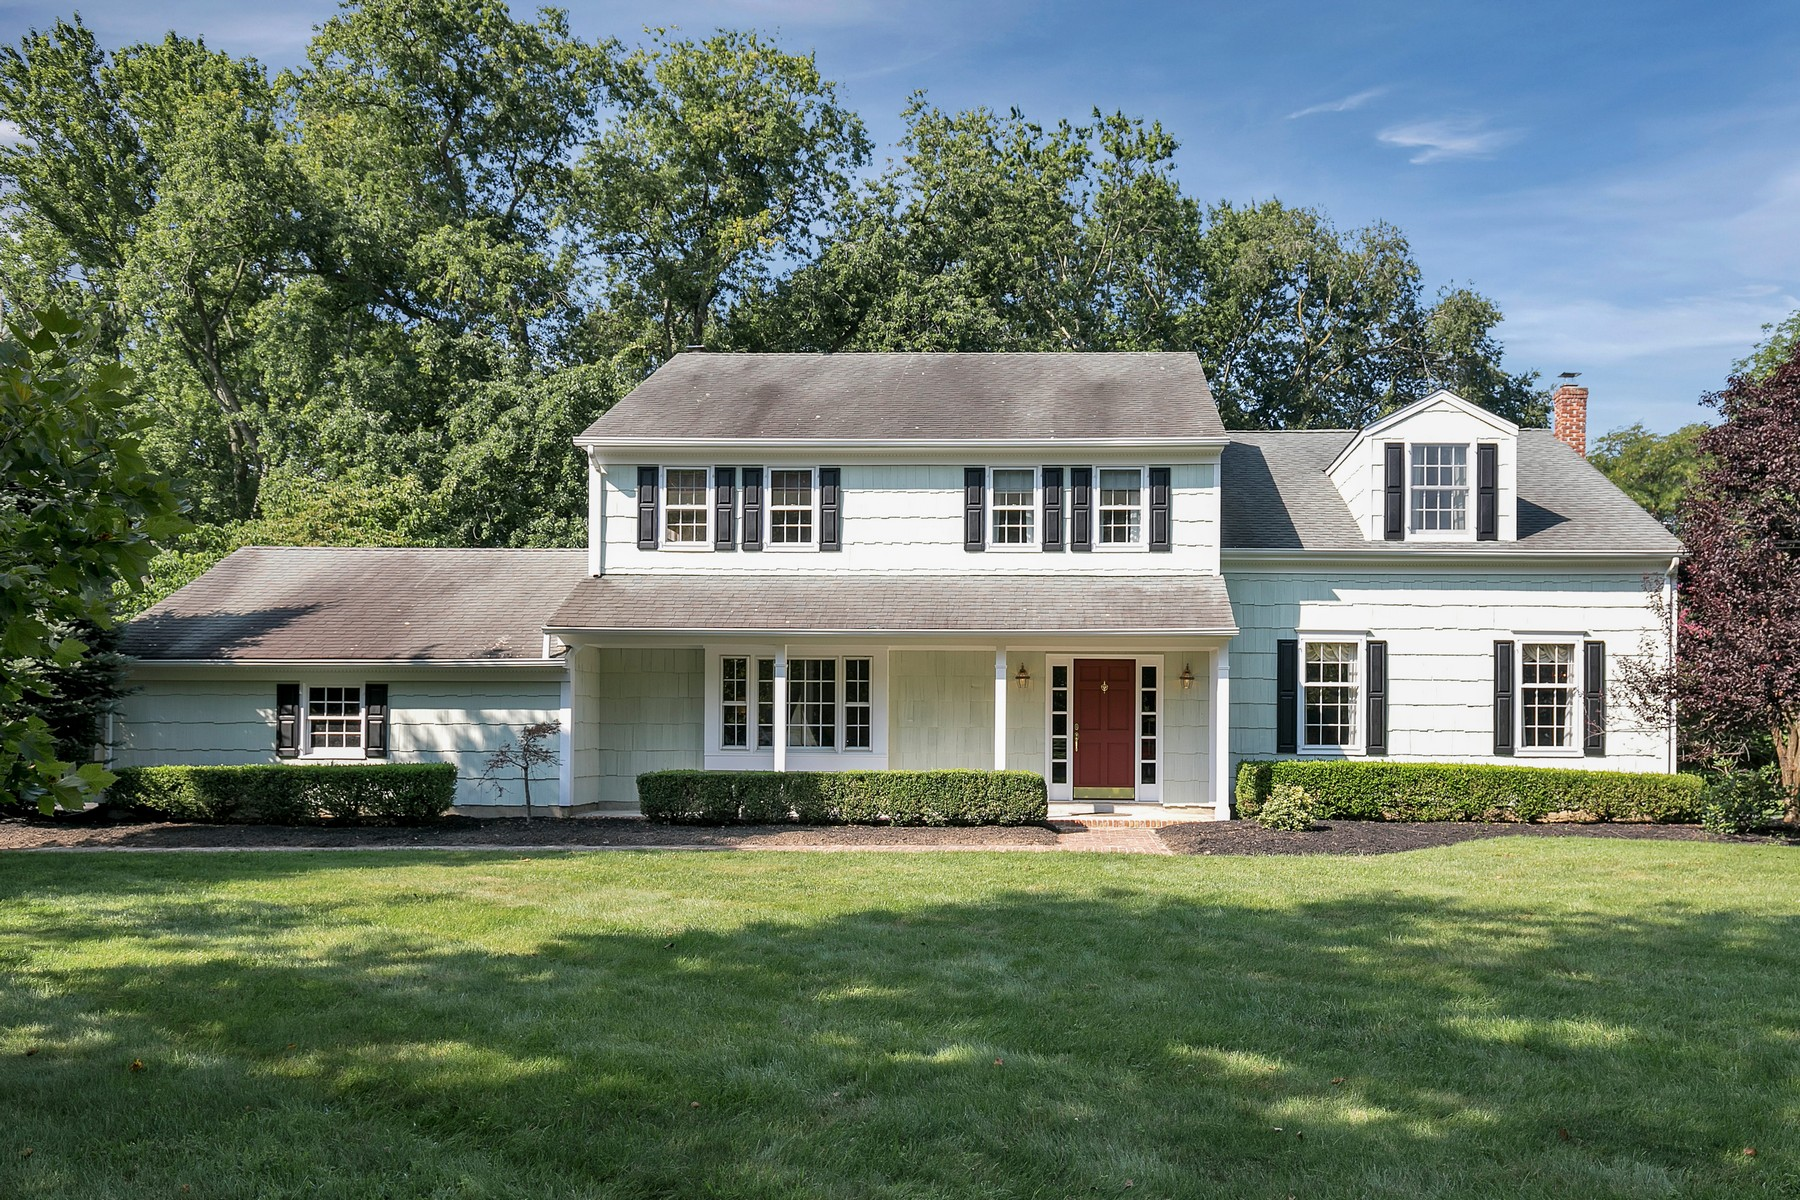 Single Family Home for Sale at Colts Neck Beauty 3 Sycamore Place Colts Neck, New Jersey, 07722 United States